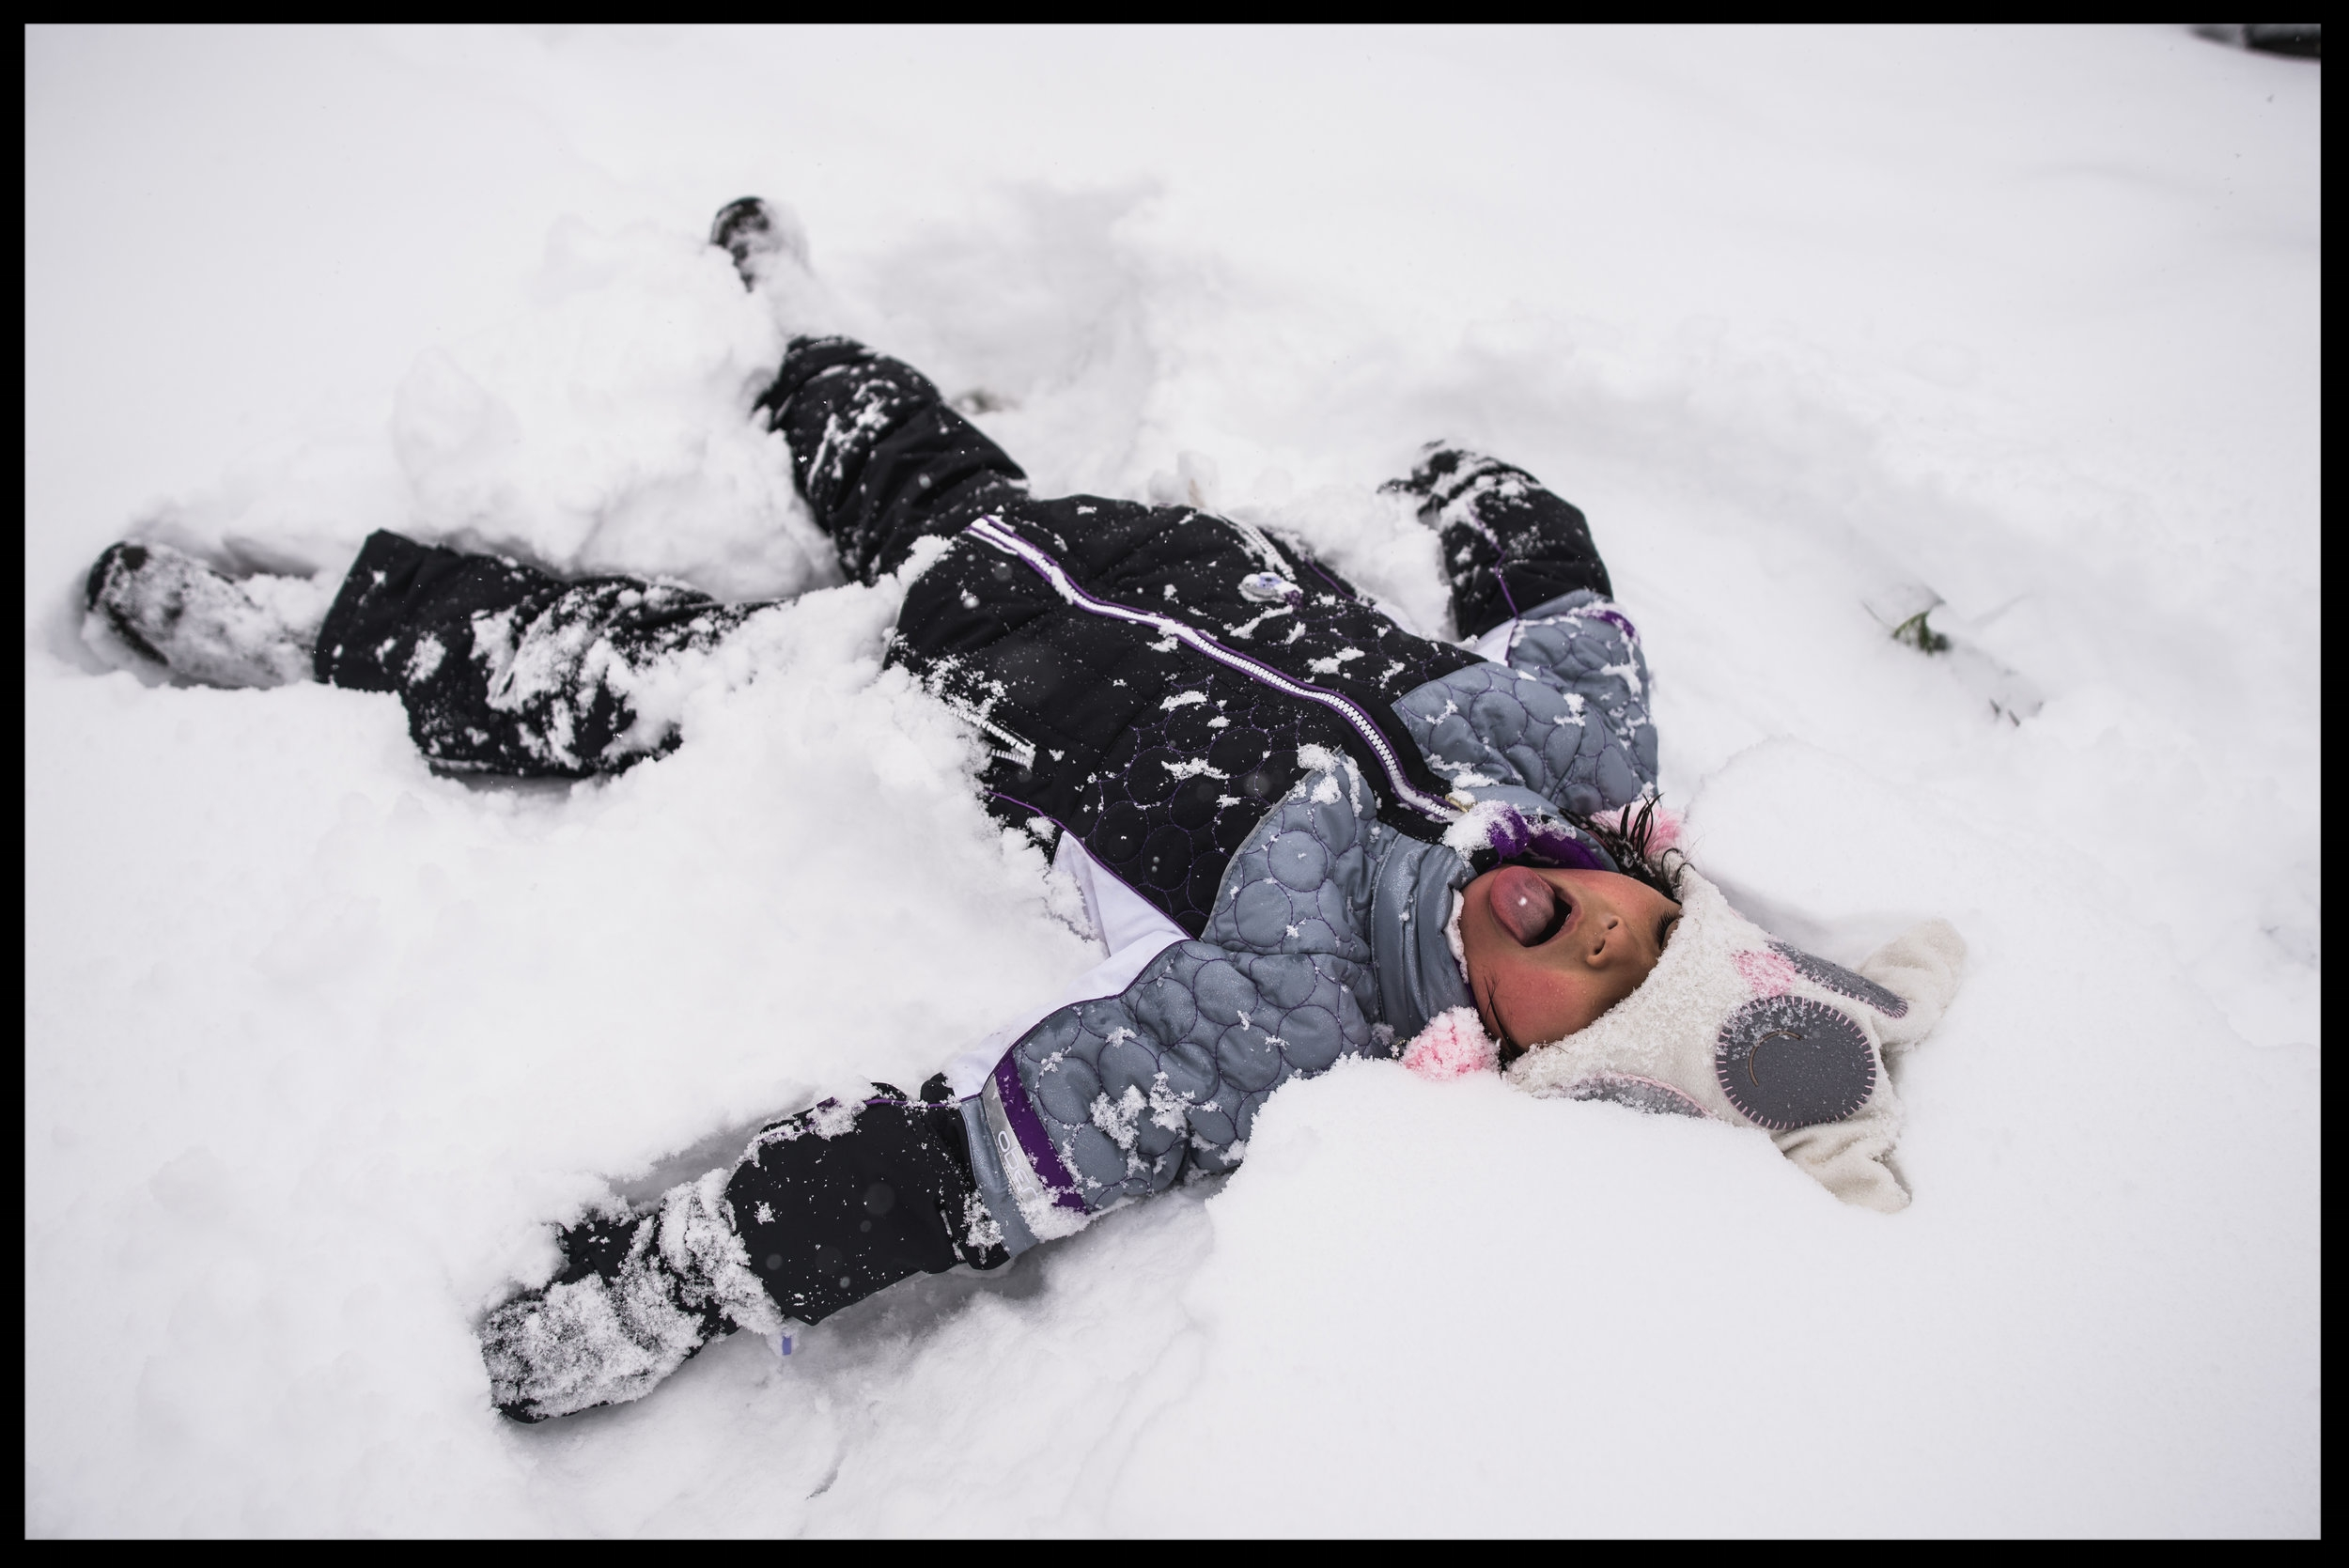 Little girl making a snow angel, snowflake on her tongue, color